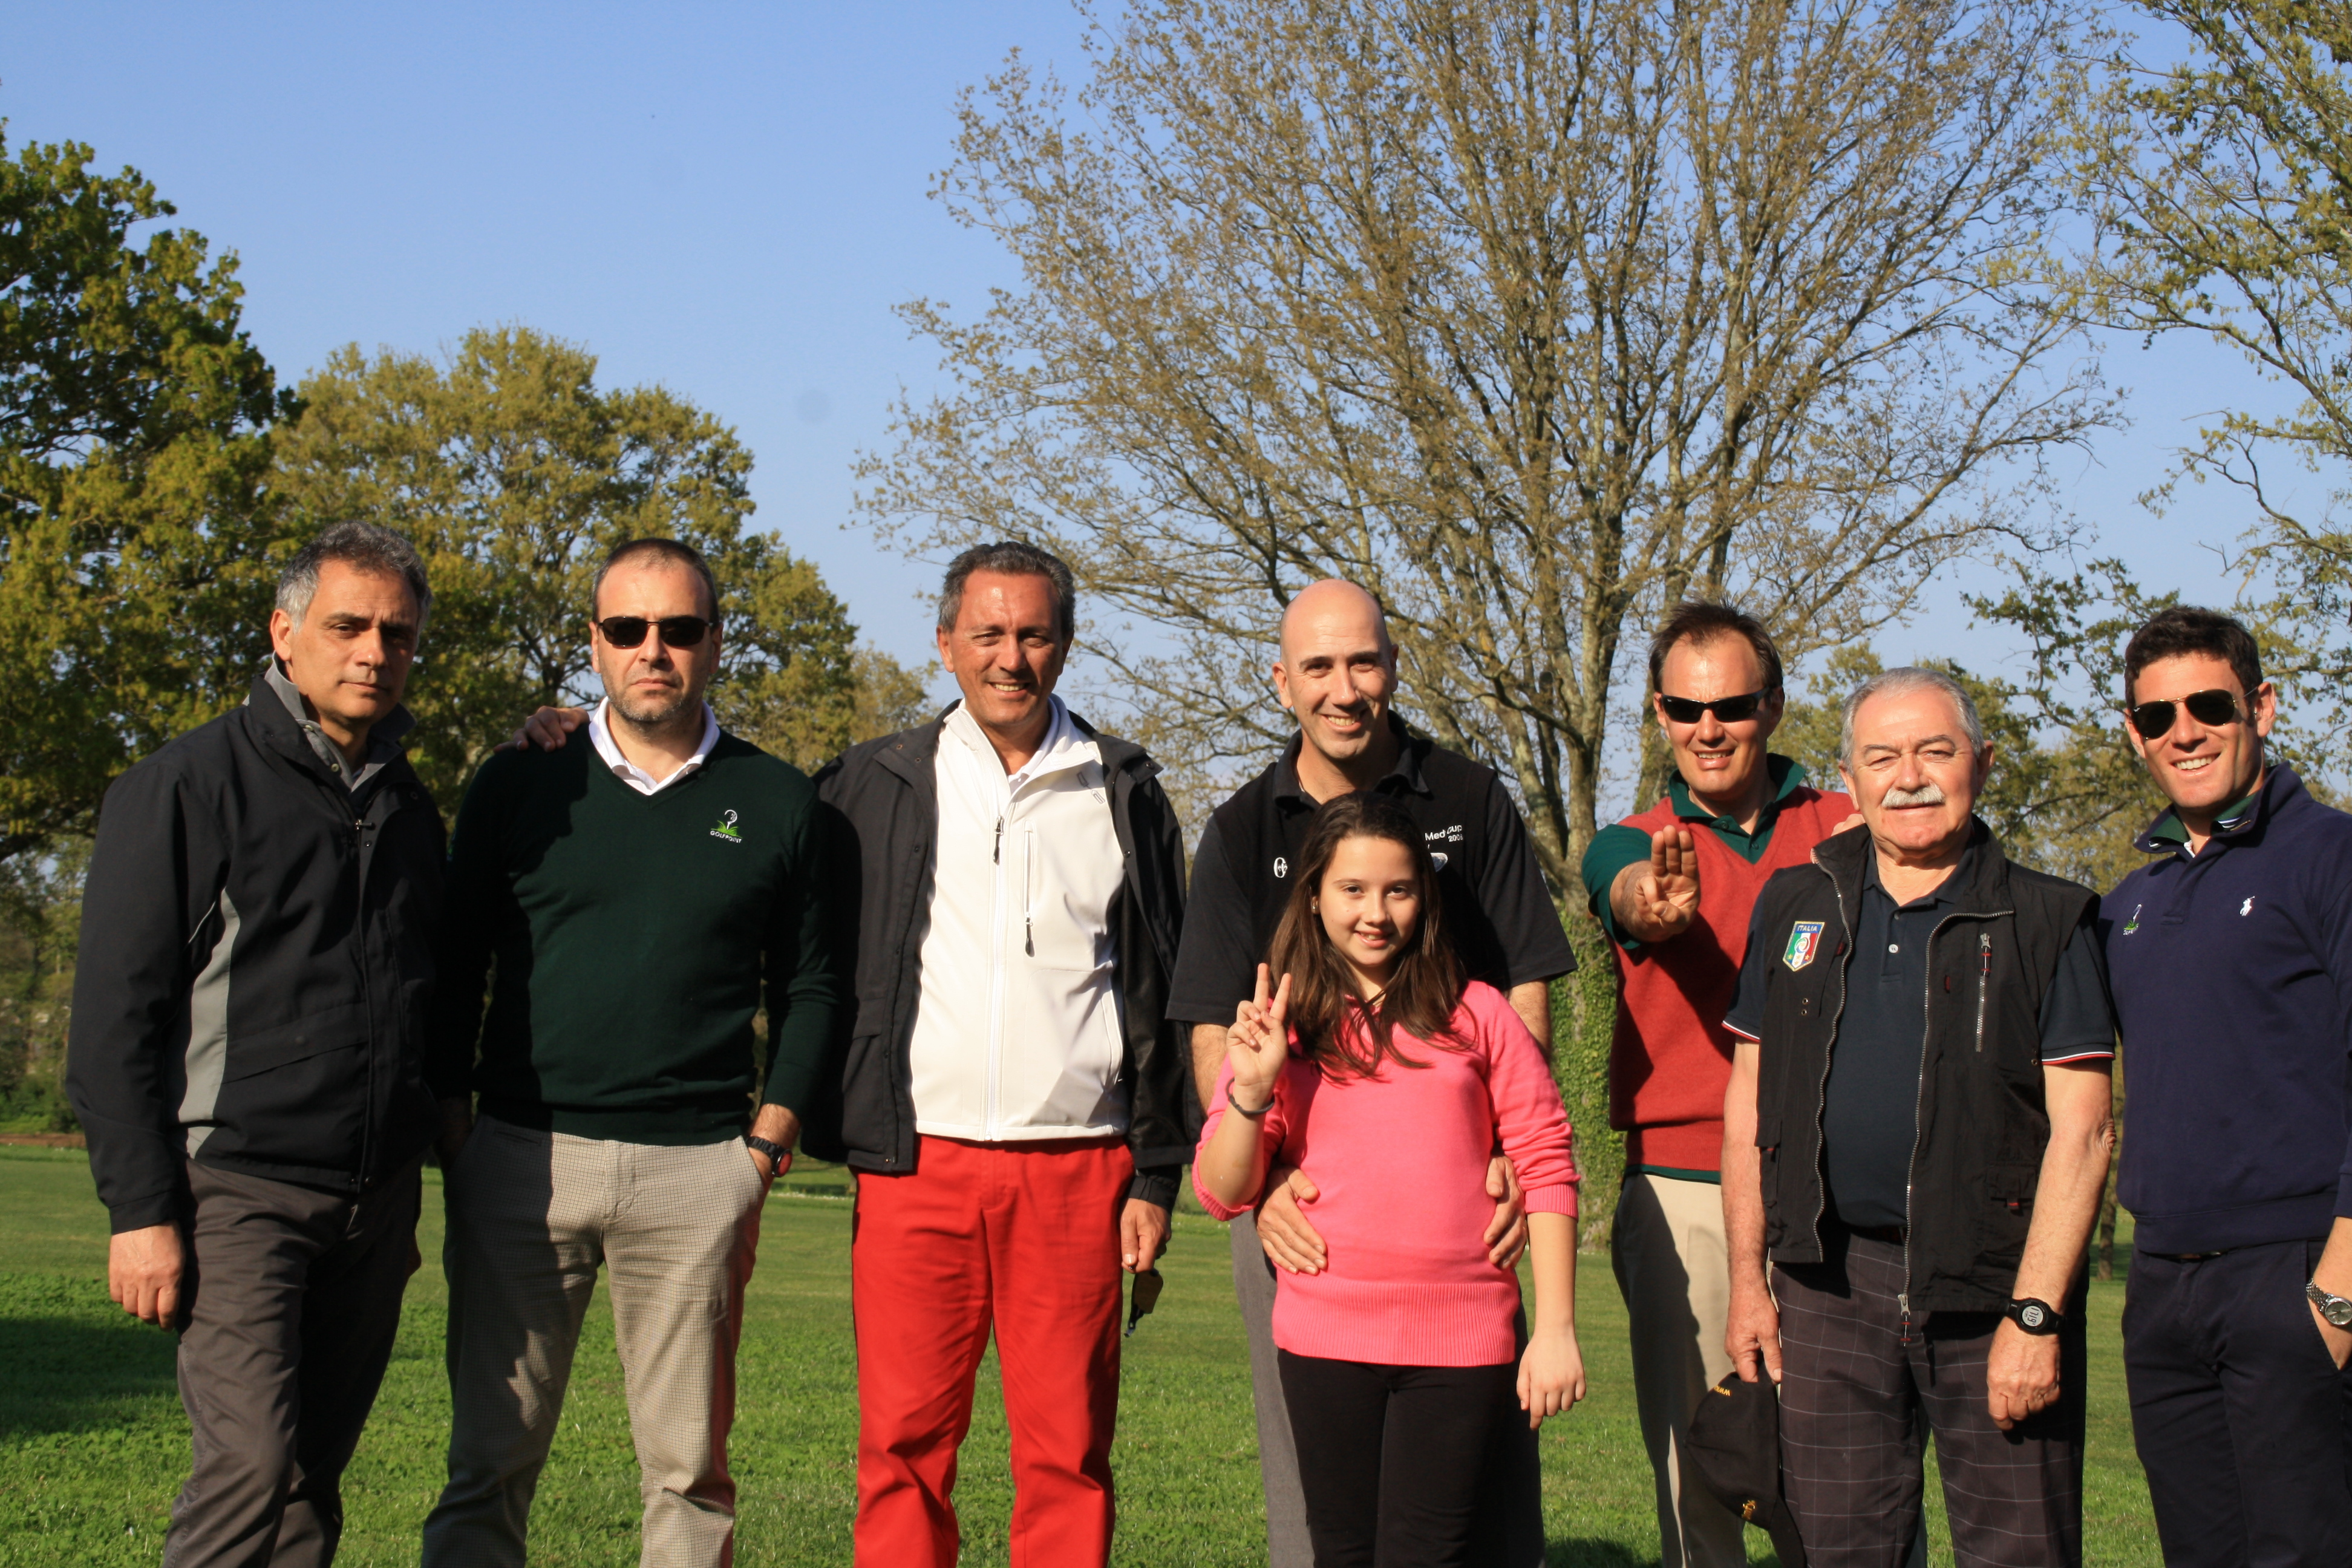 Trackman day al Golf Club Olgiata